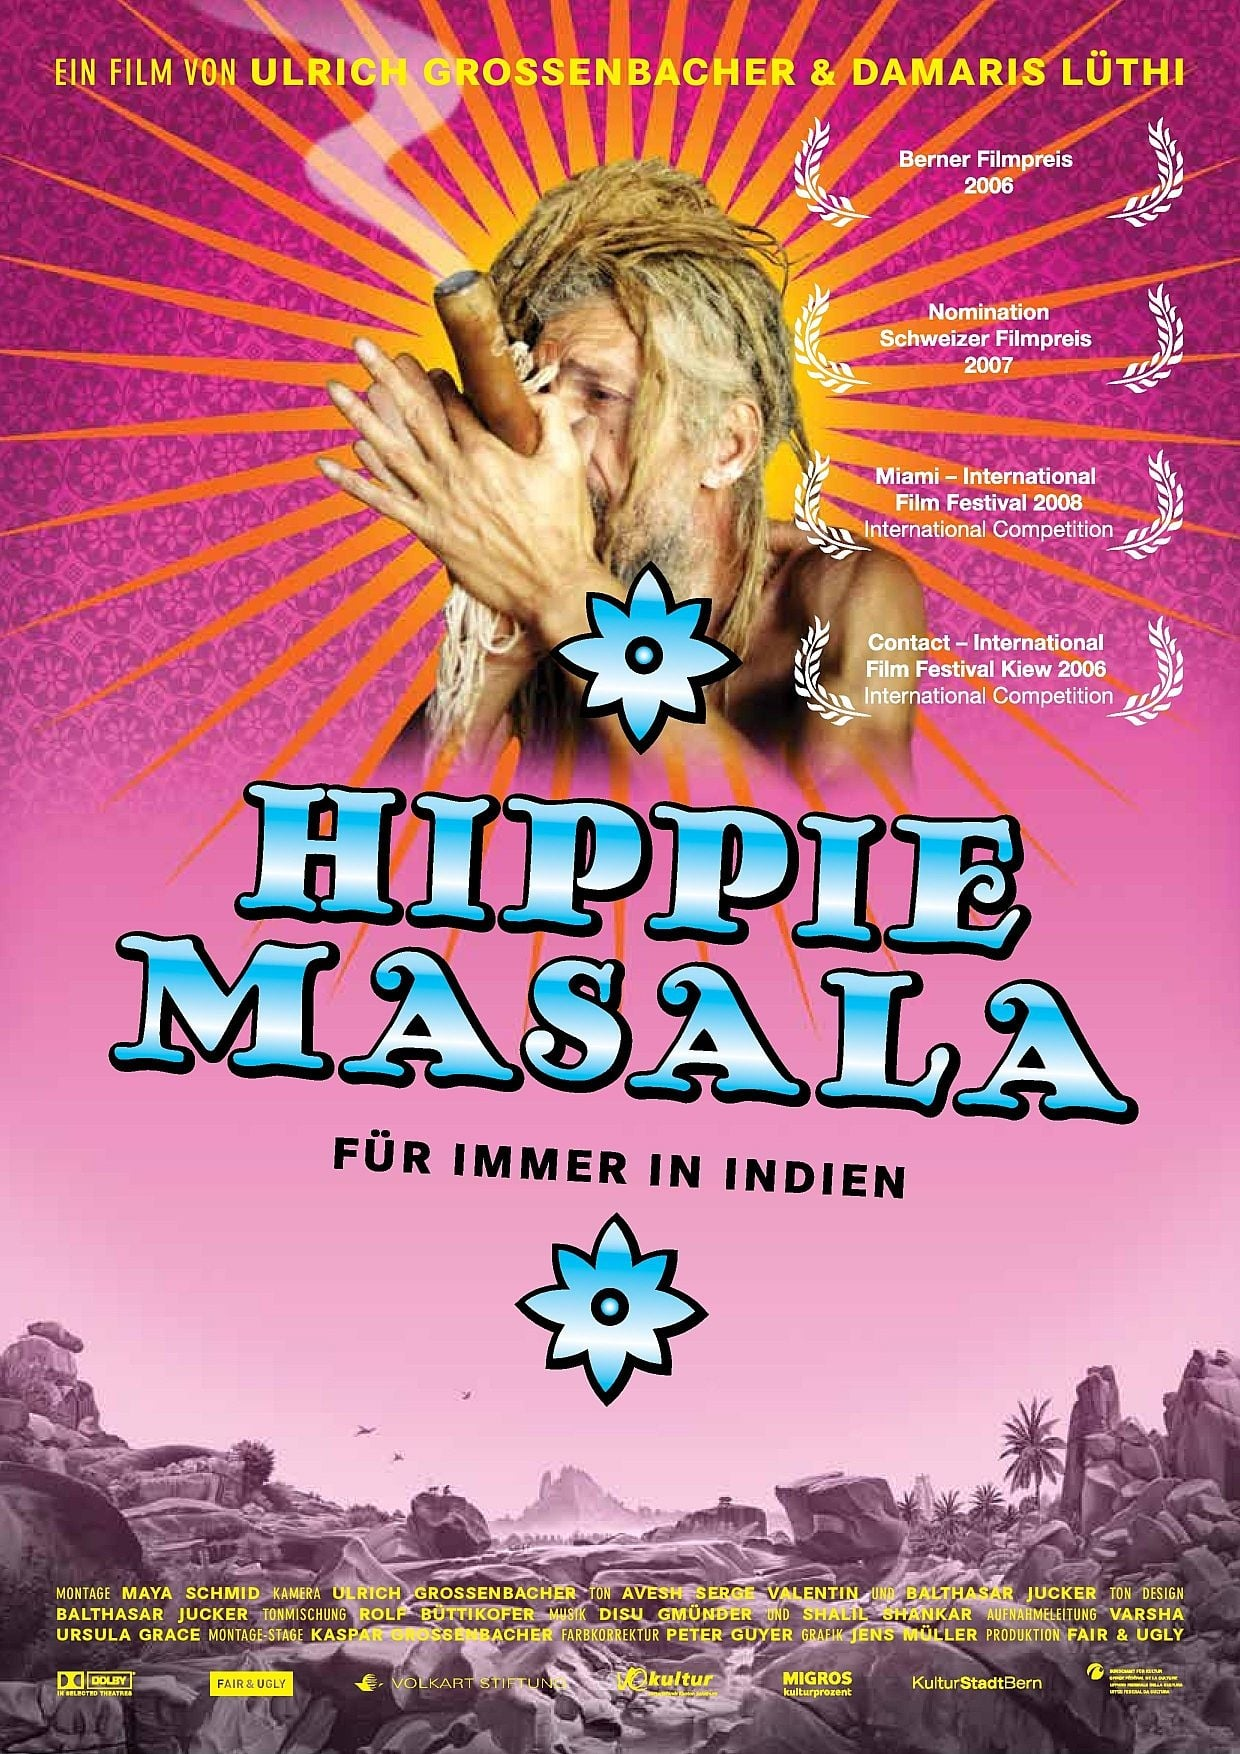 Hippie Masala - Forever in India (2006)